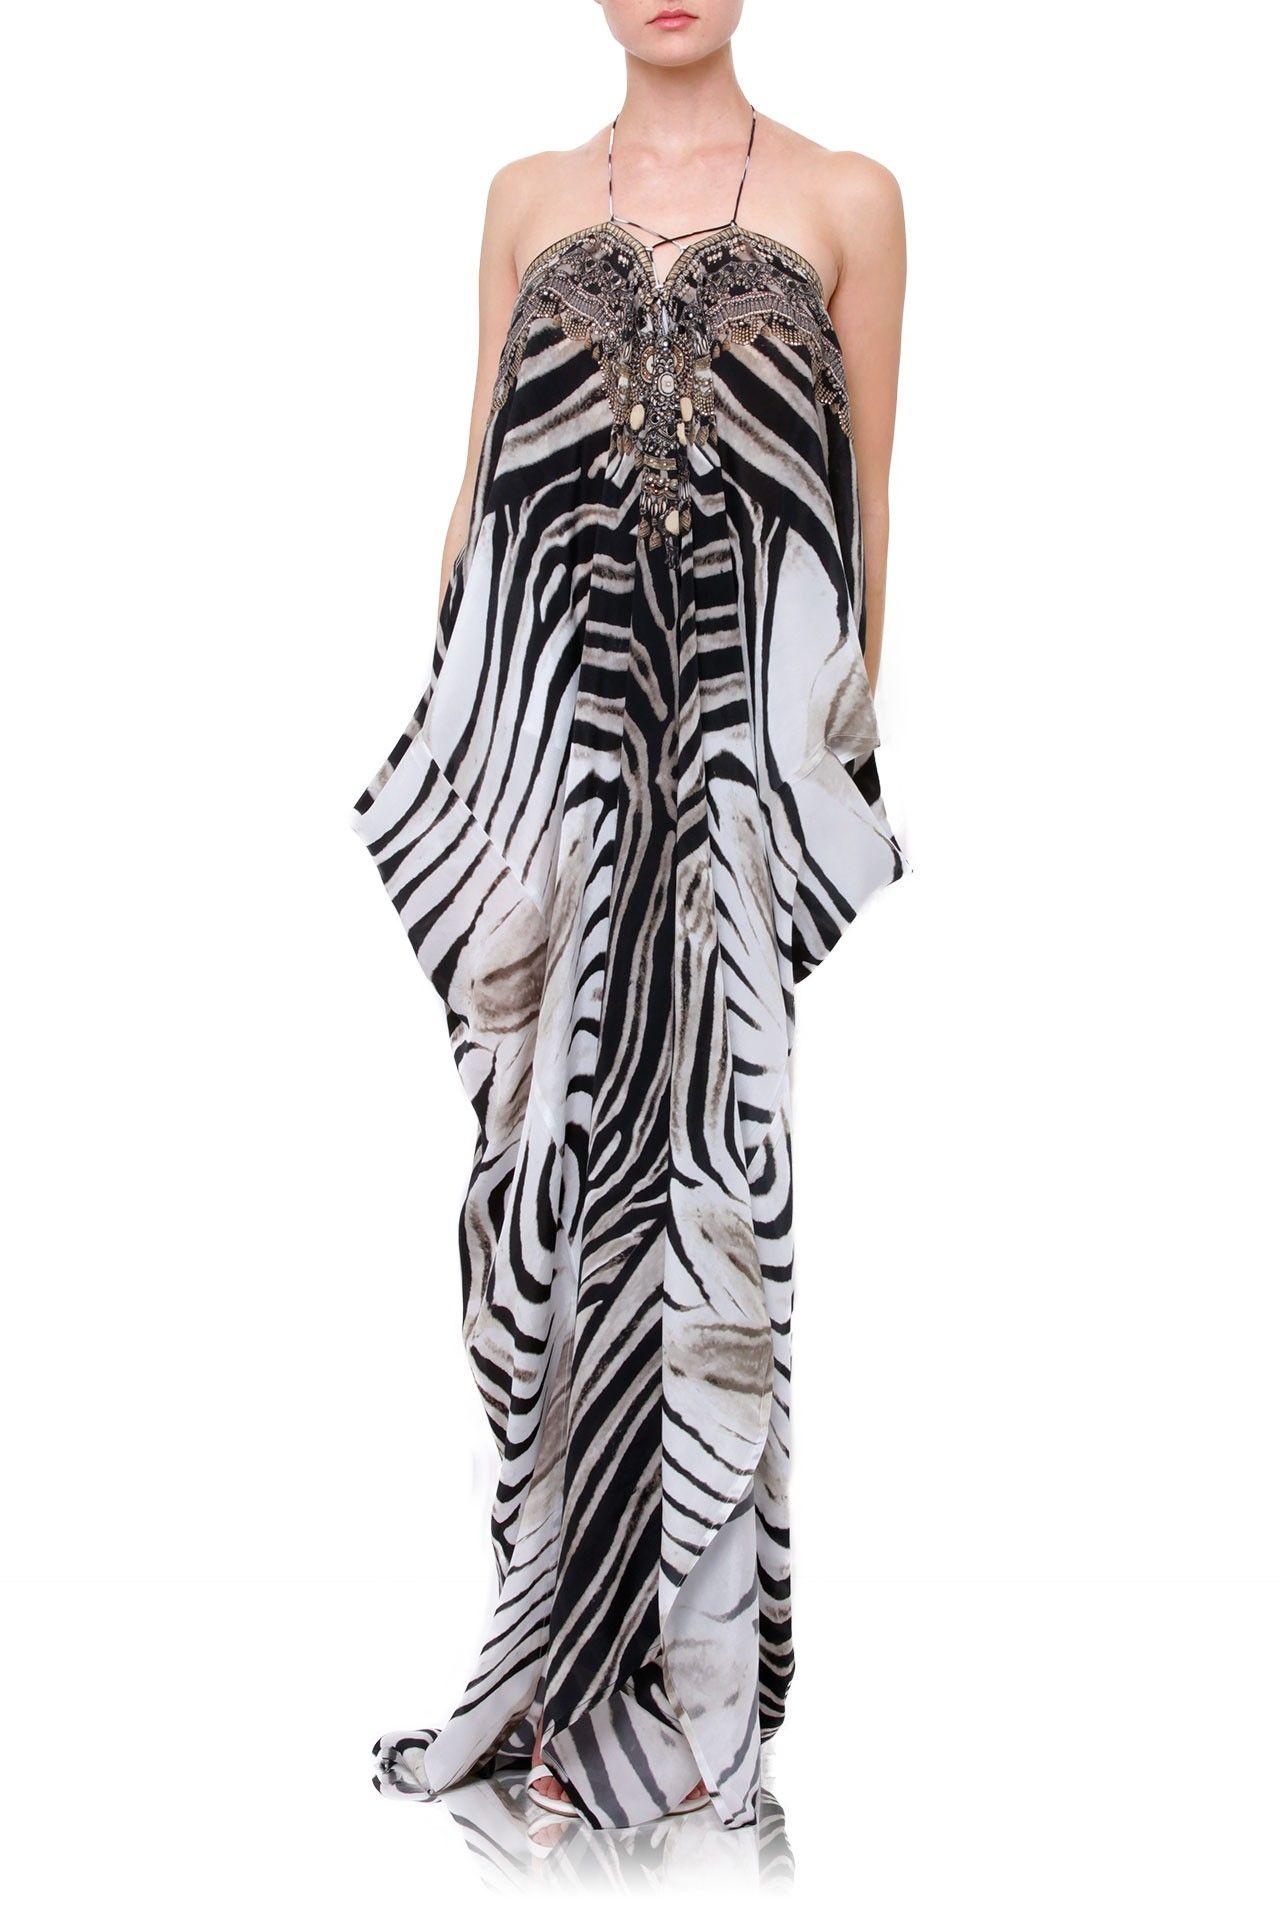 06183707a1cf 50%-60% Off Designer Kaftans [Best Stripe Print] Up to 50% Off - Shahida  Parides®